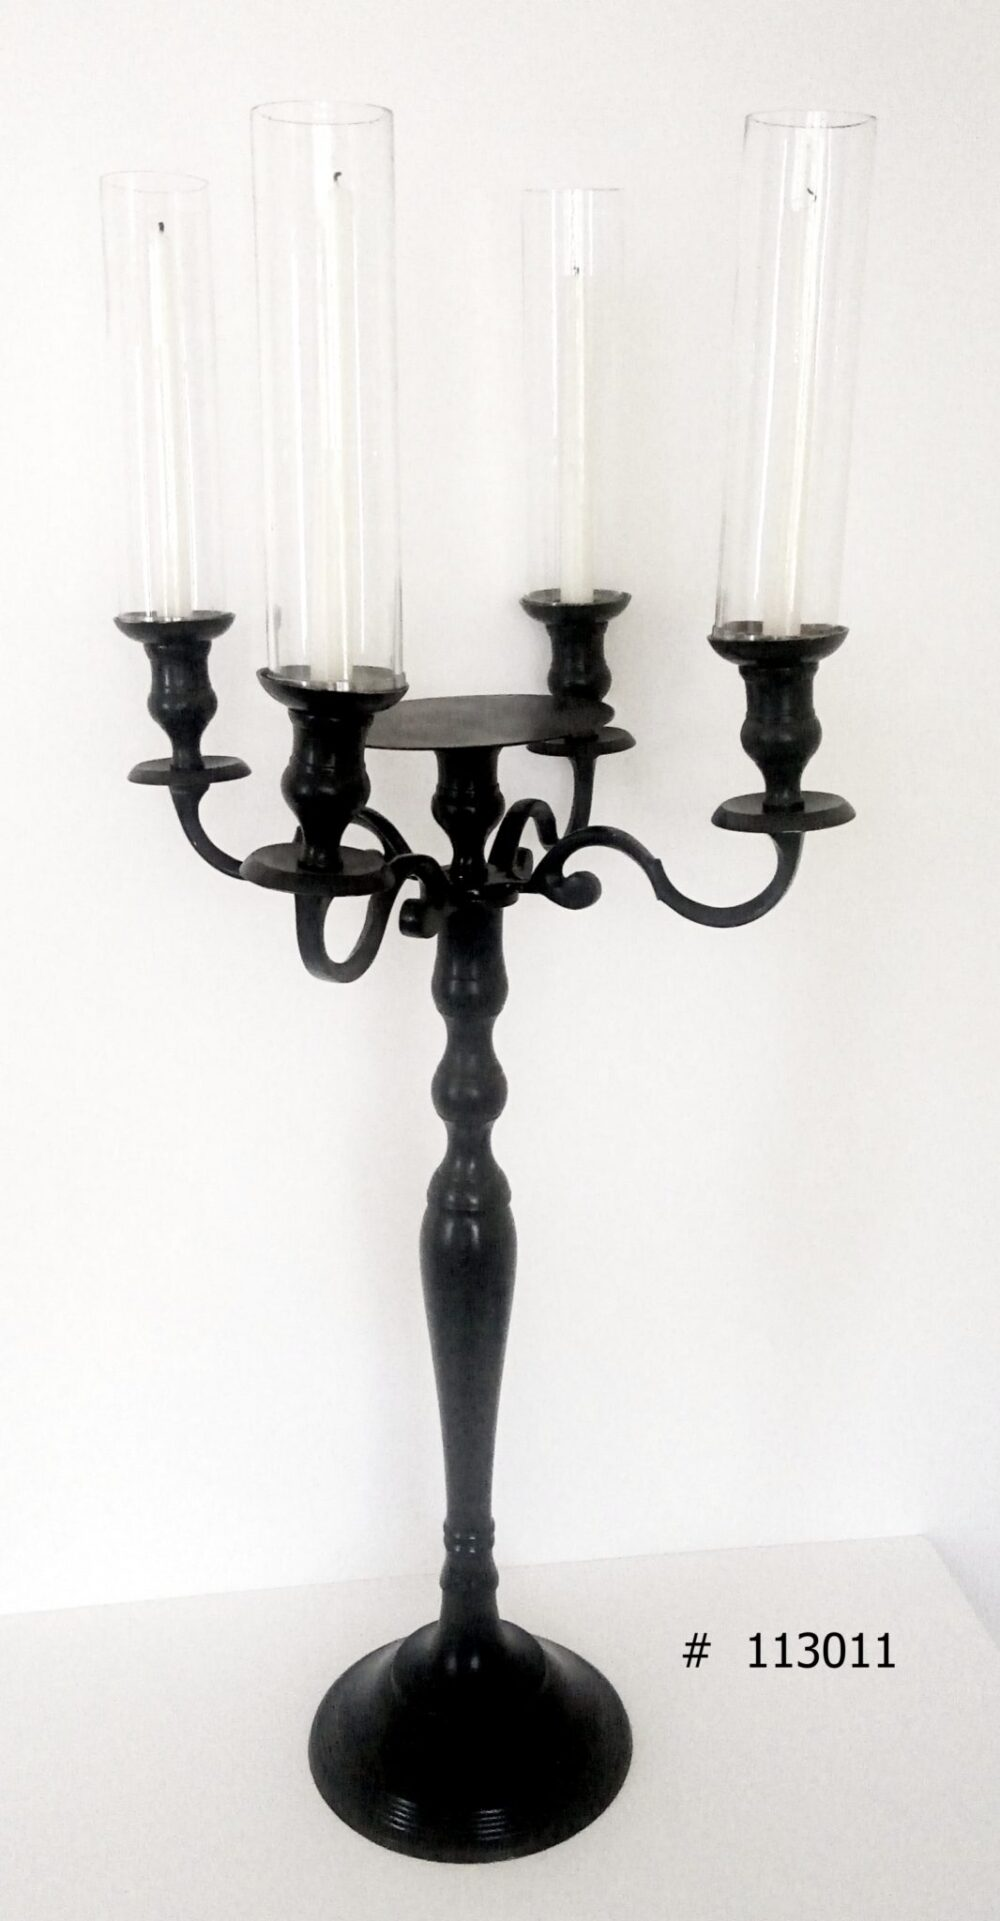 Black Candelabra with 4 taper candles and 4 glass covers with plate for florals # 113011